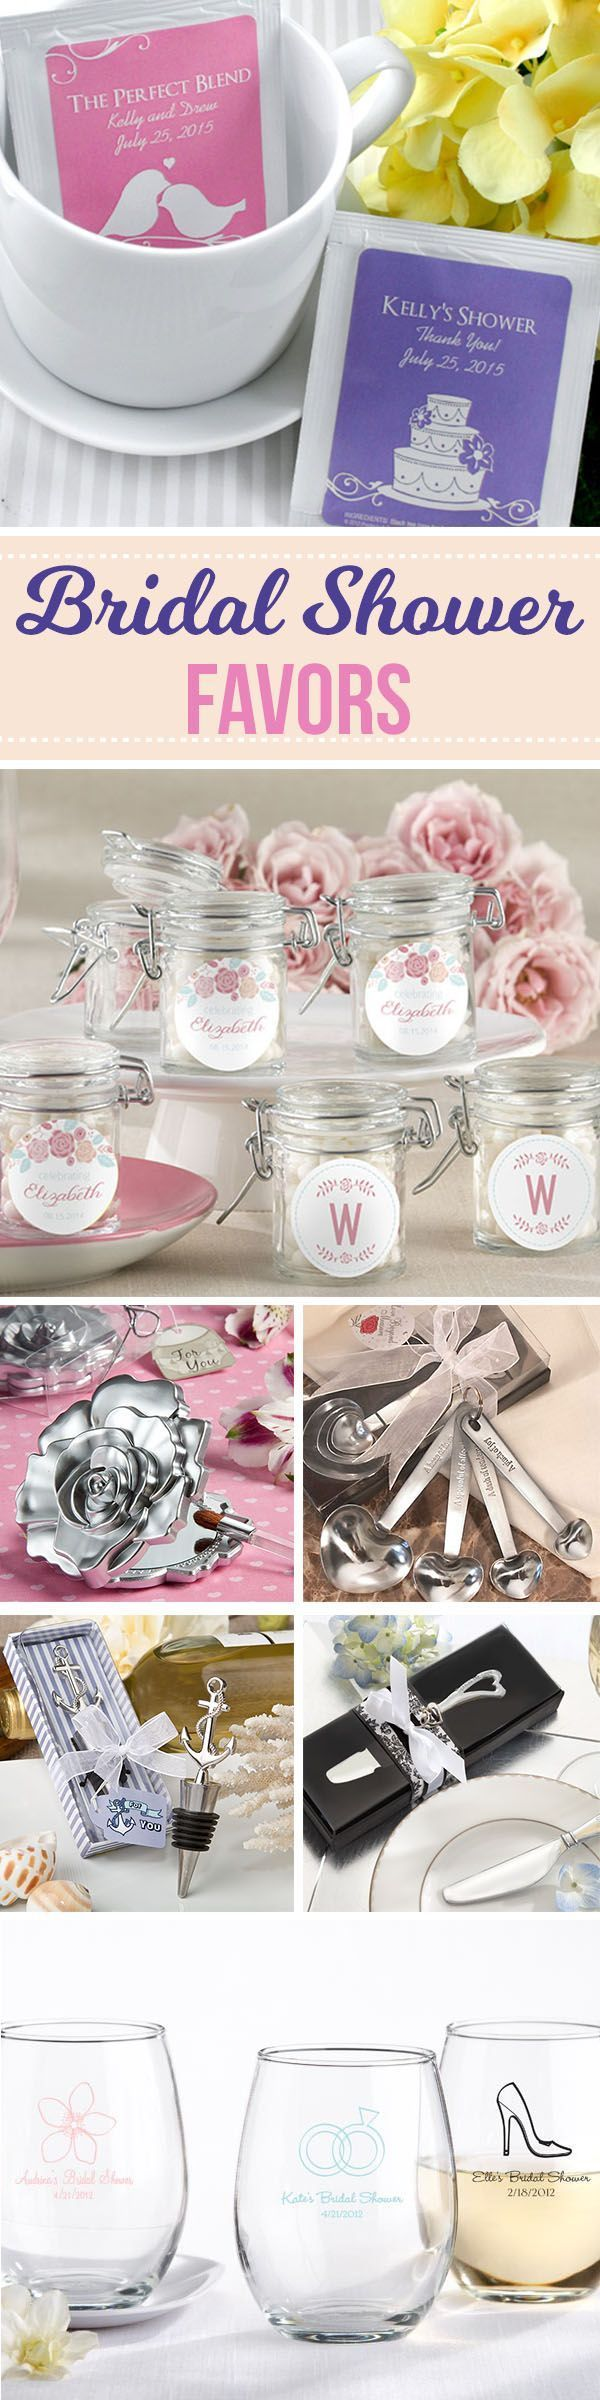 Bridal shower party supplies - 47 Bridal Shower Favors Your Guests Will Actually Want And Use Ranging From